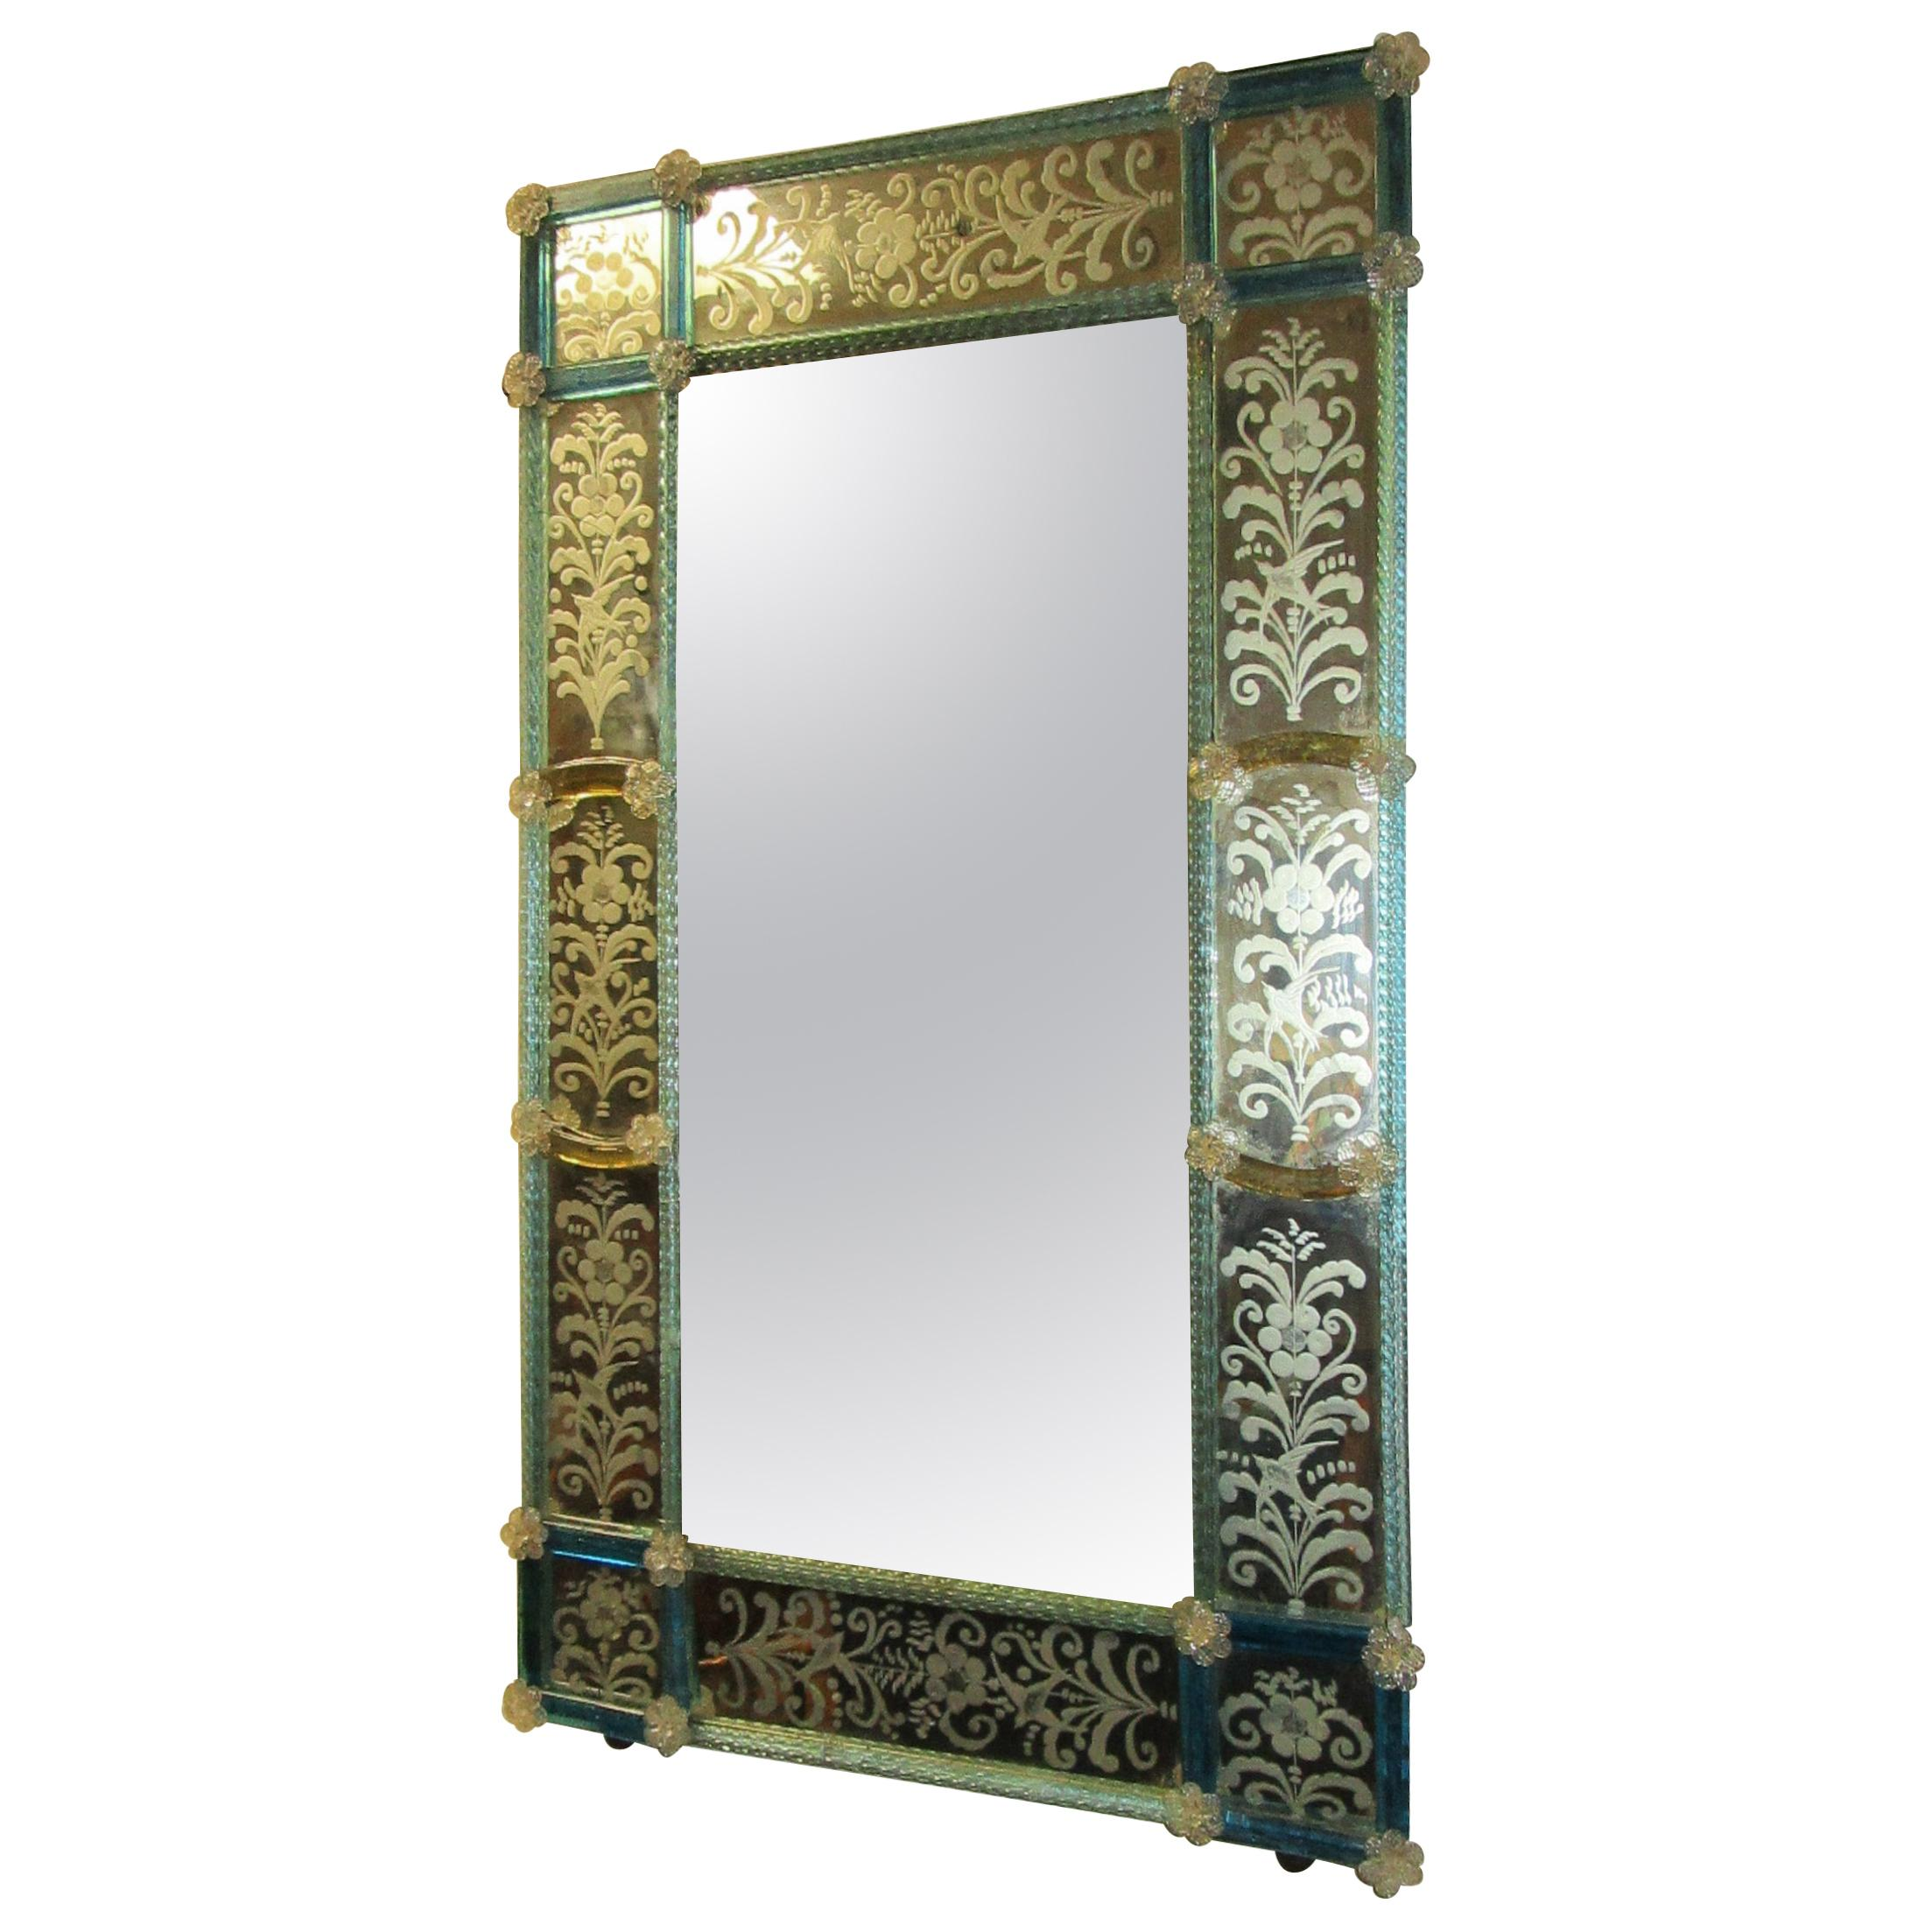 19th Century Venetian Etched Mirror with Blue Glass